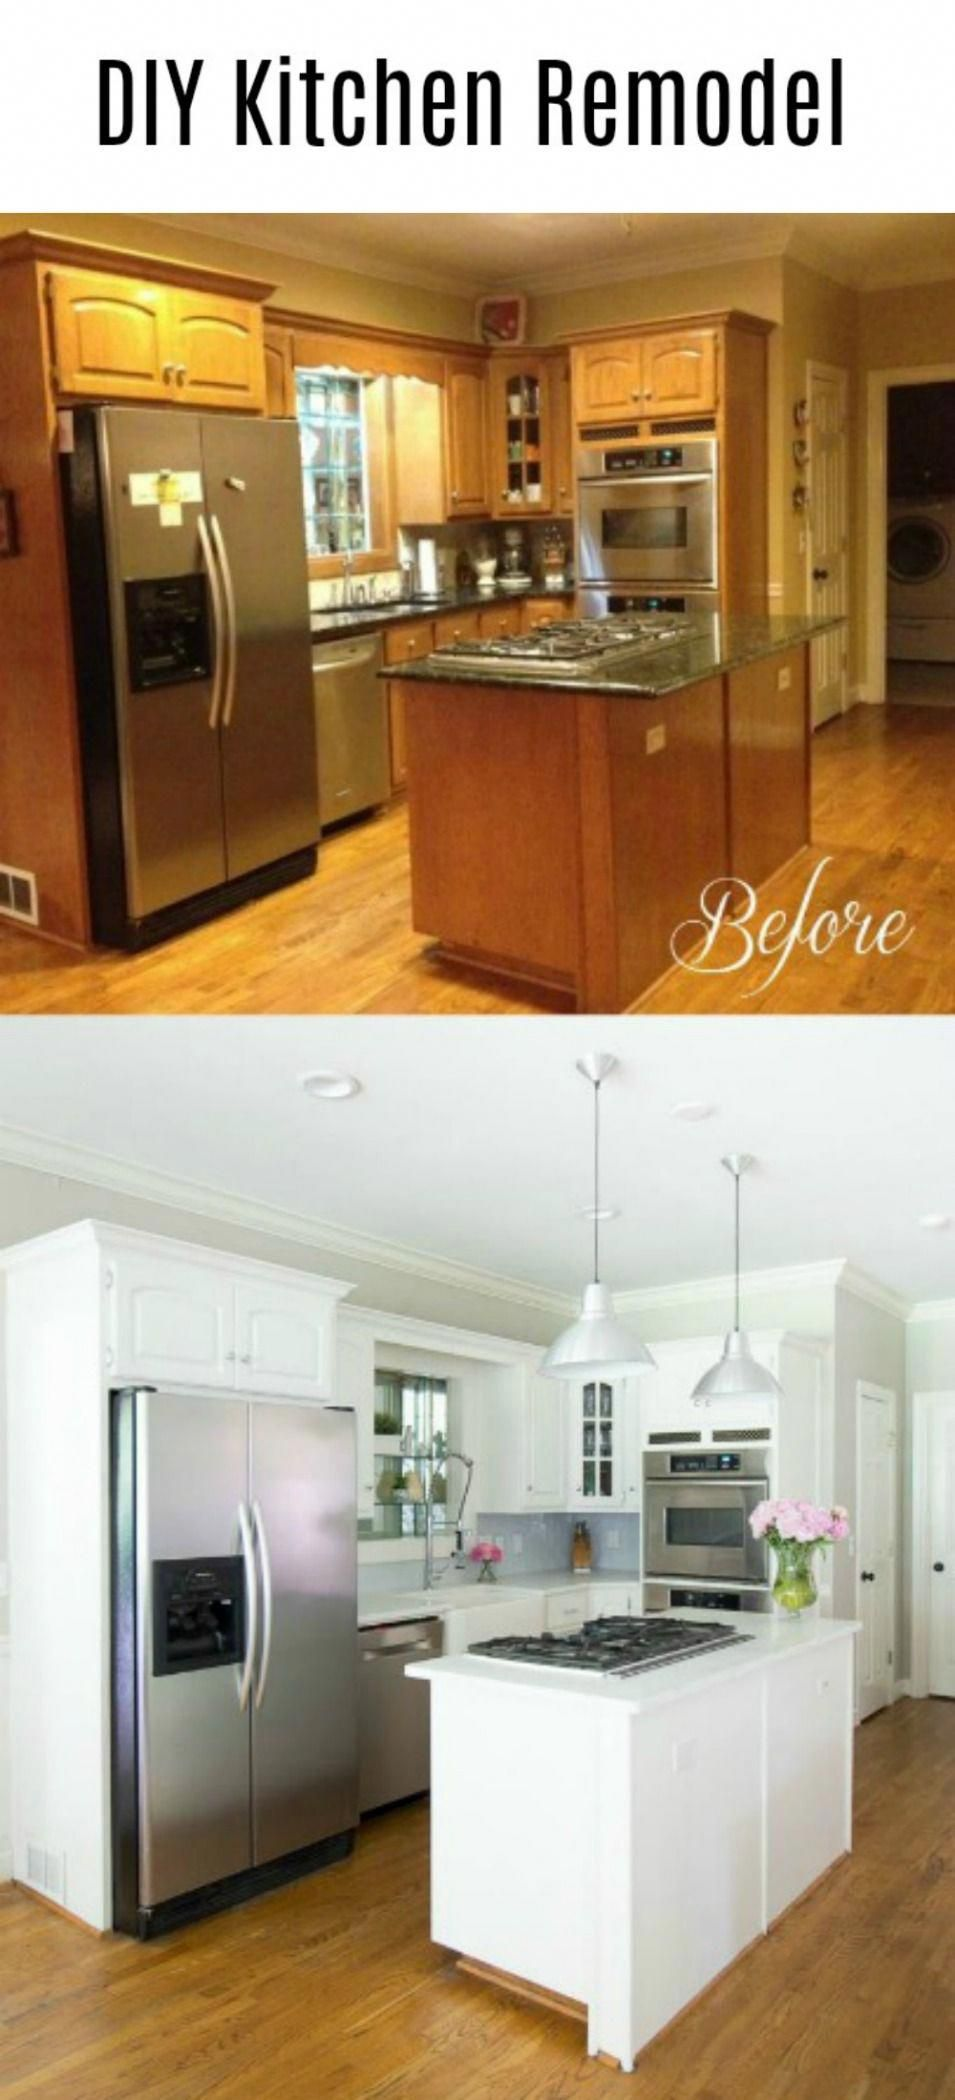 Diy Kitchen Remodel Reveal We Updated Our 90 S Kitchen And Turned It Into A Beautiful And Br Diy Kitchen Remodel Kitchen Remodel Plans Kitchen Cabinet Remodel